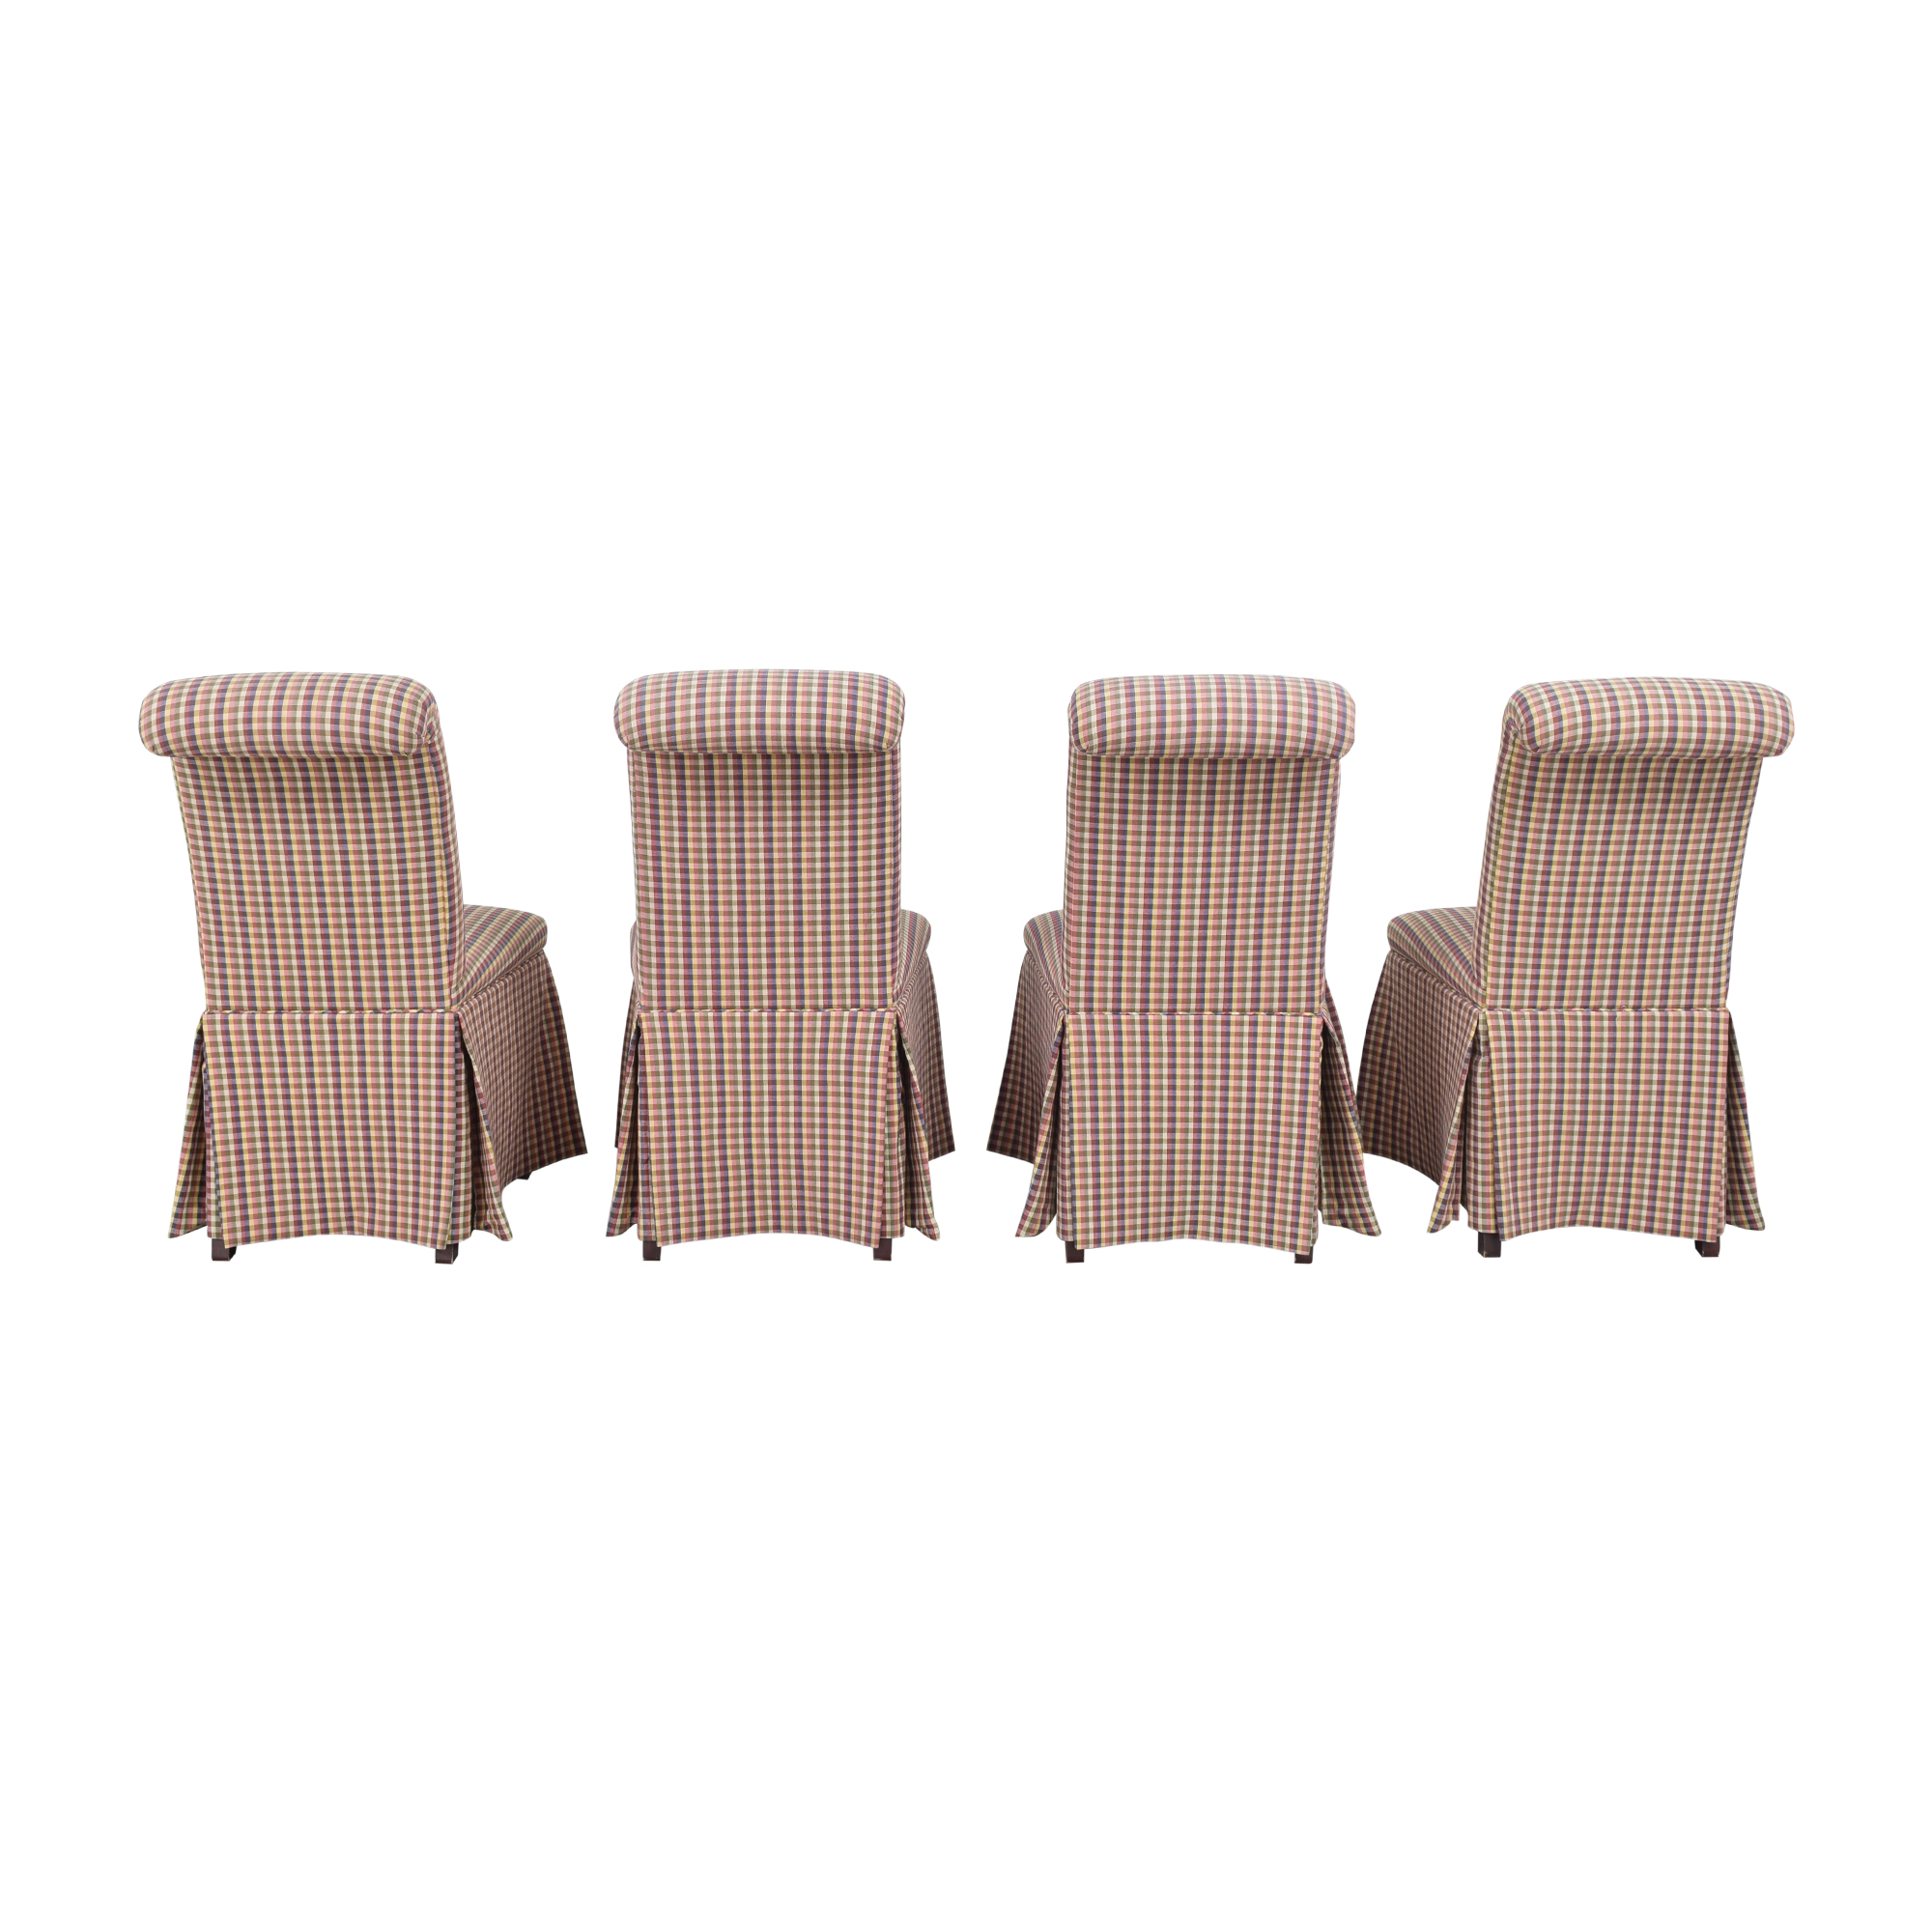 Sherrill Furniture Slipcovered Scroll Top Dining Chairs / Dining Chairs